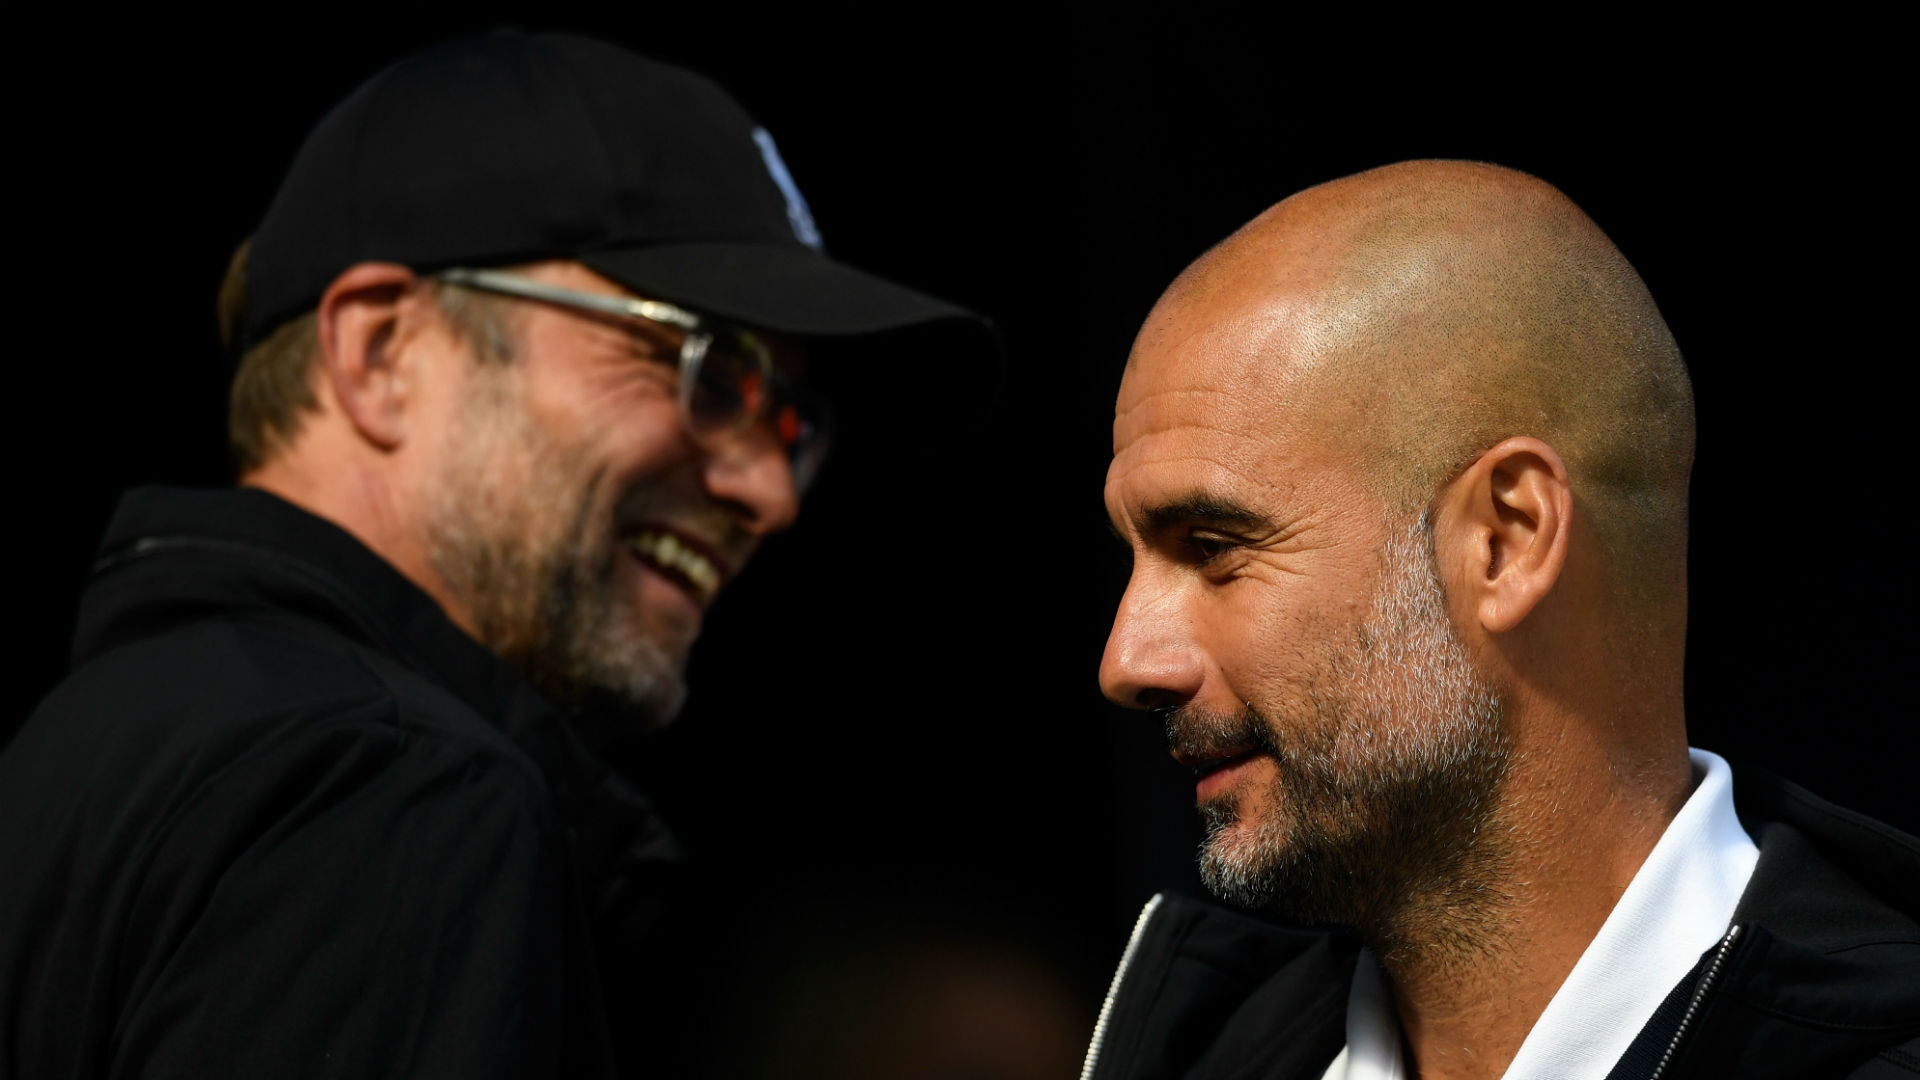 Liverpool boss Jurgen Klopp insists Man City remain the team to beat